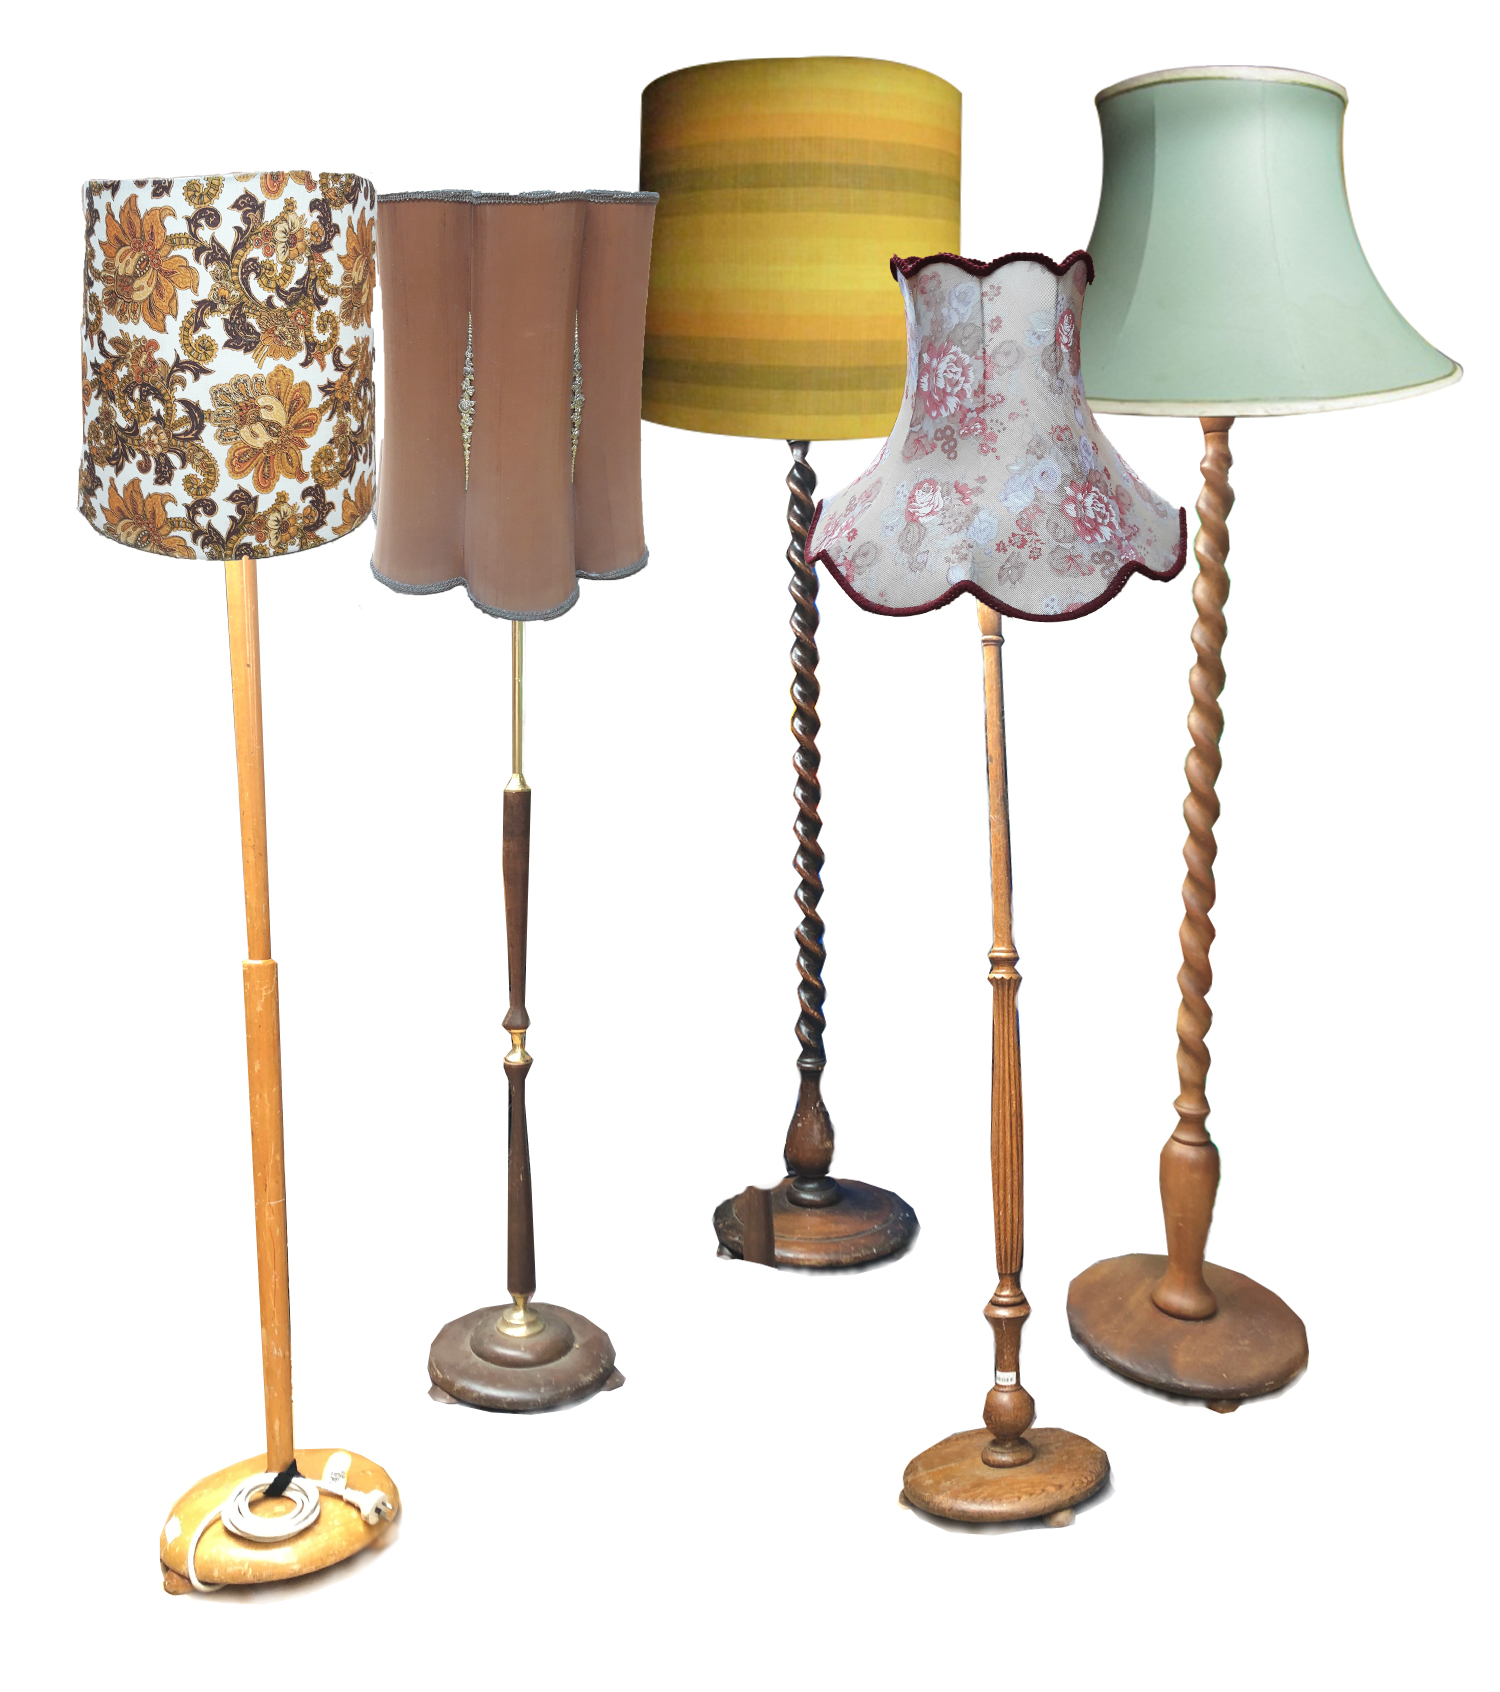 Standing Lamps and Shades assorted.